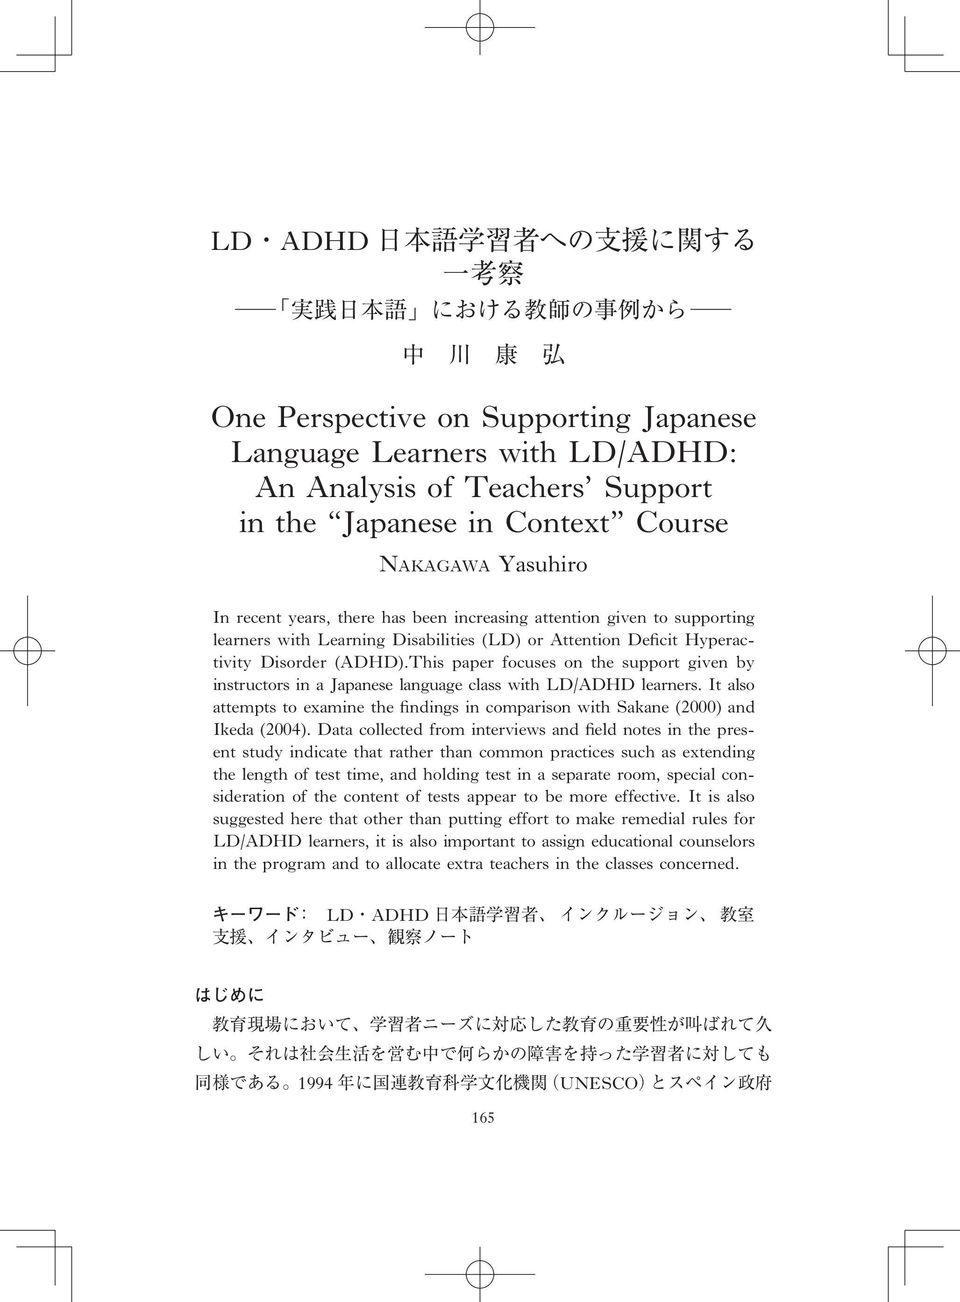 This paper focuses on the support given by instructors in a Japanese language class with LD/ADHD learners. It also attempts to examine the findings in comparison with Sakane (2000) and Ikeda (2004).